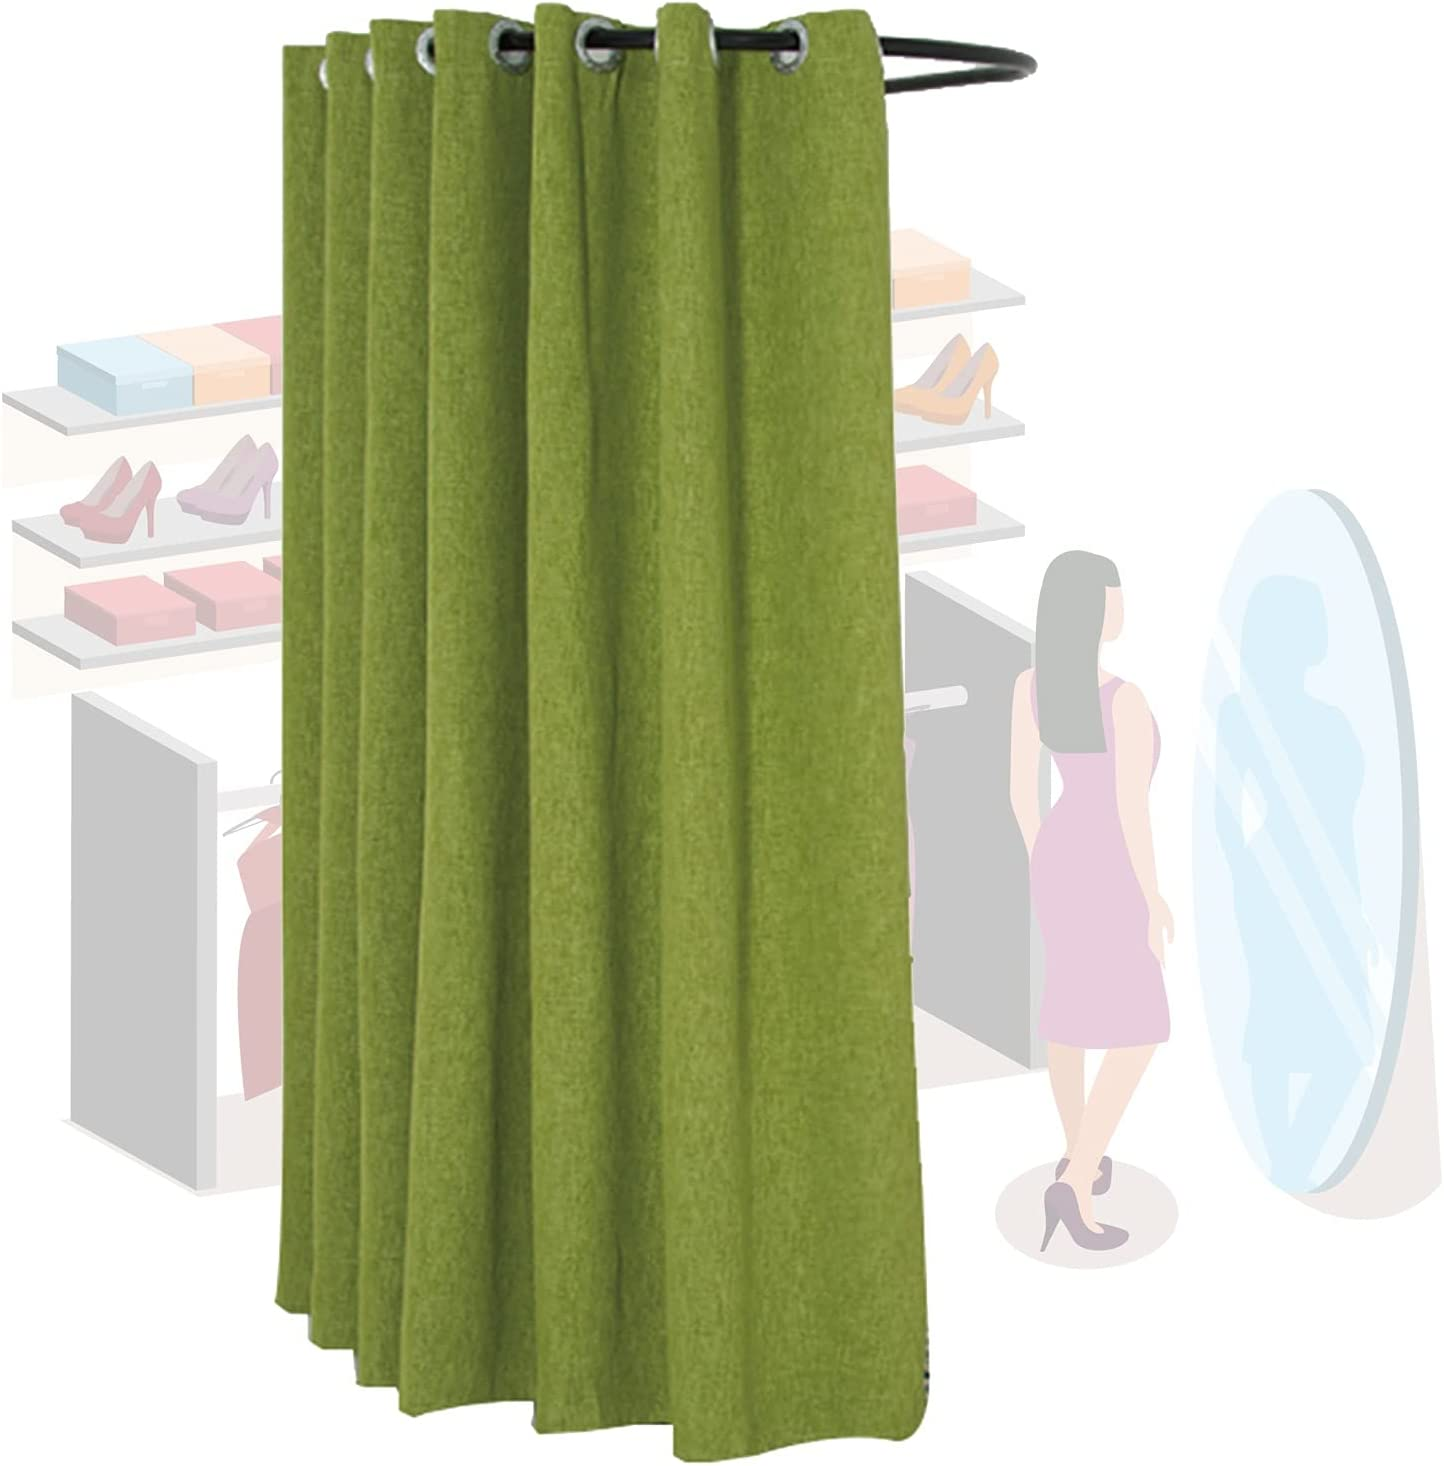 Fitting Max 68% OFF Room Clothing Store U Locker Type Track Move Wall OFFicial